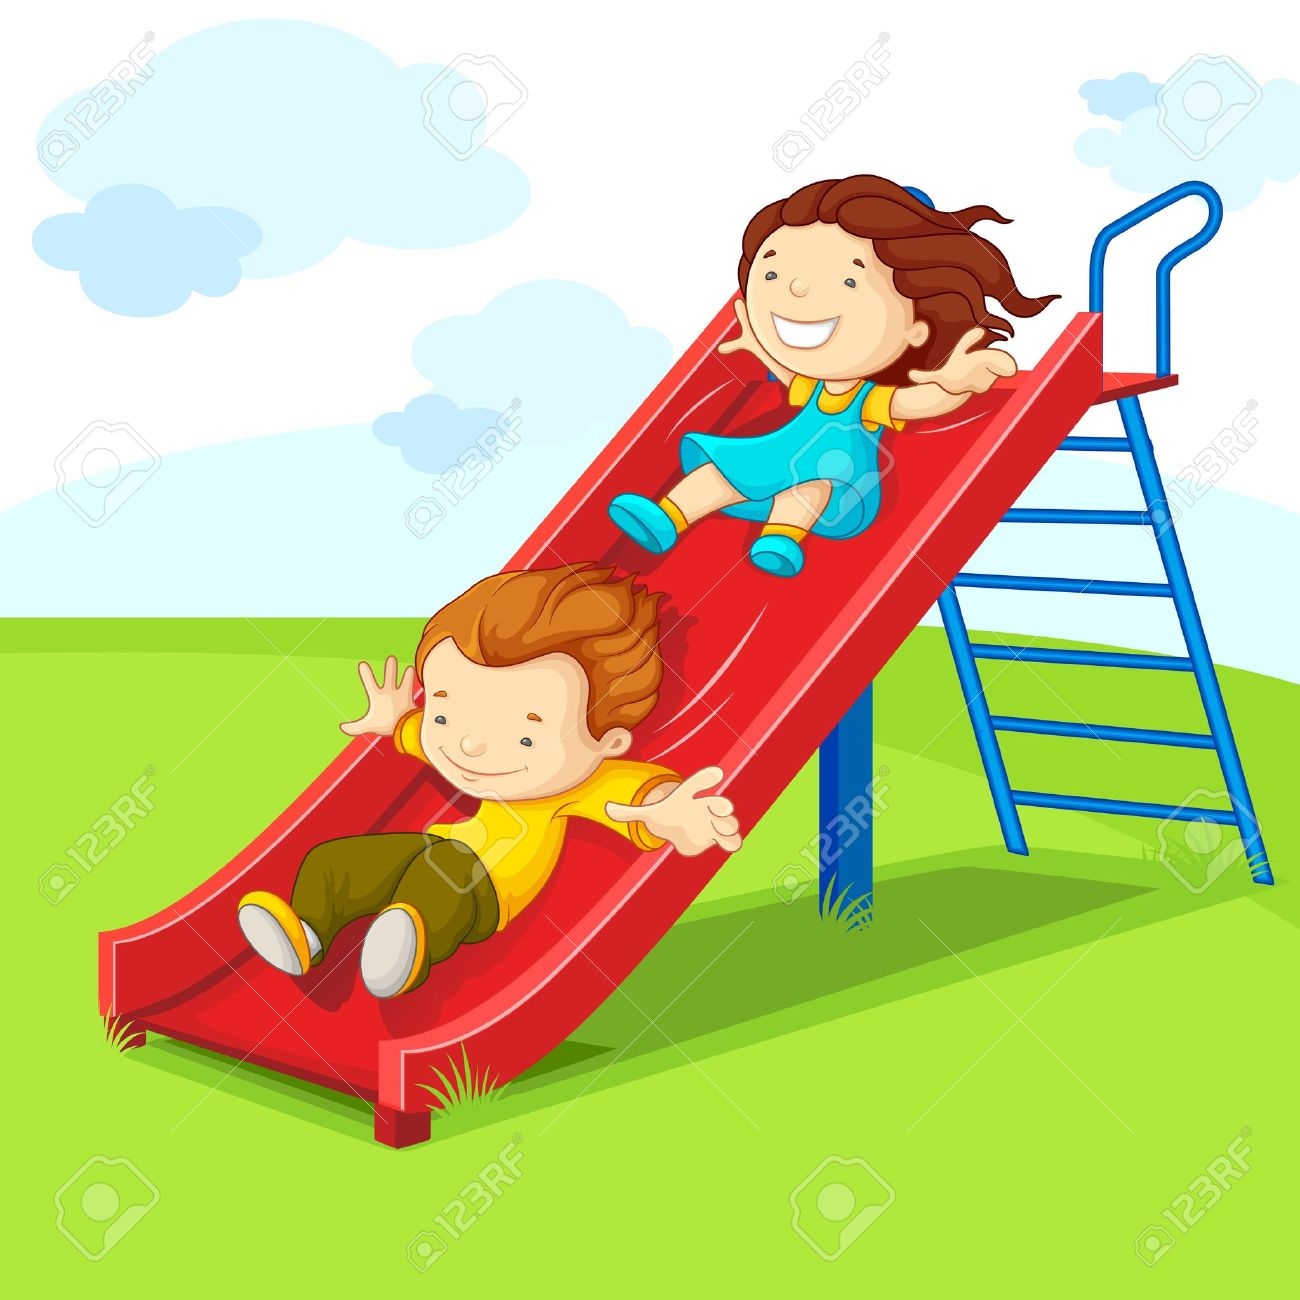 kids on slide royalty free cliparts, vectors, and stock illustration